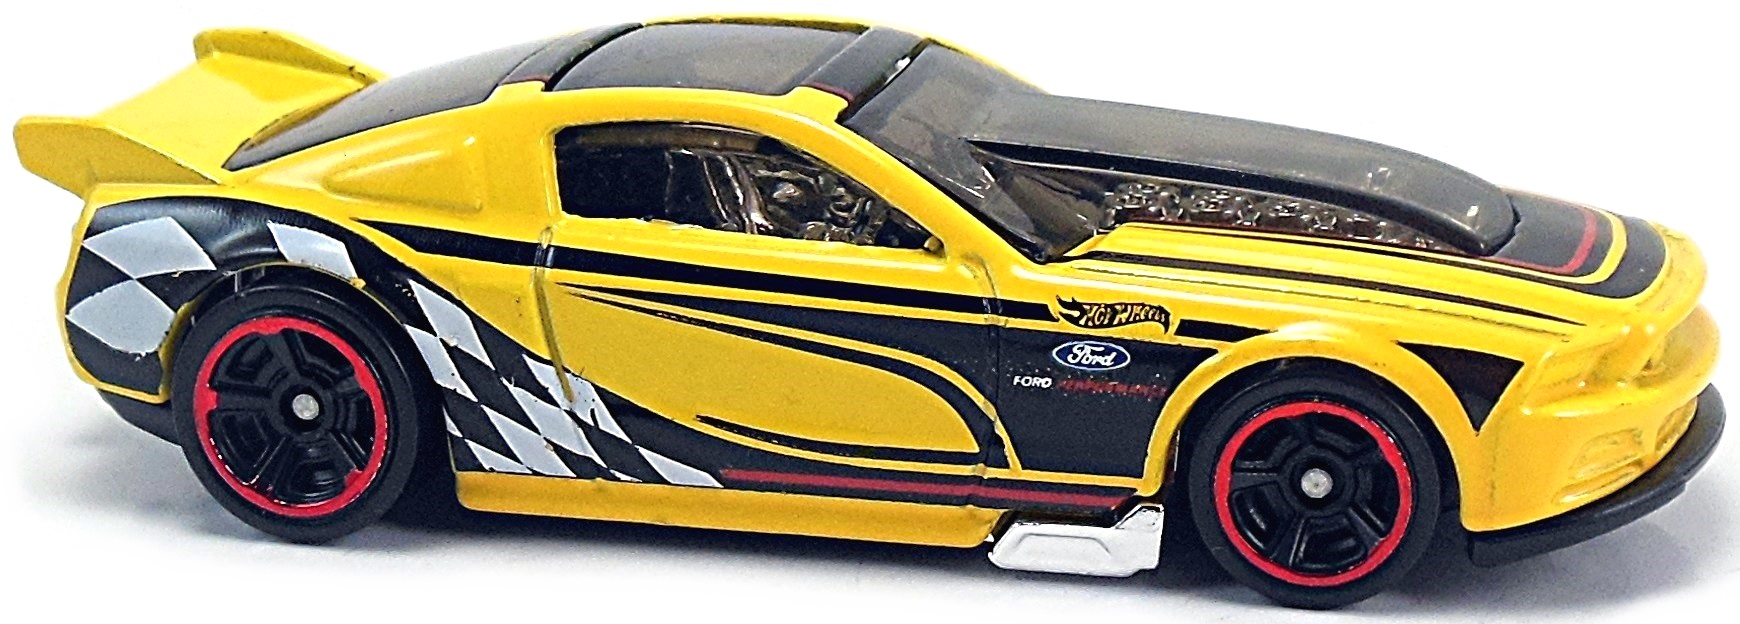 13 Ford Mustang Gt 76mm 2013 Hot Wheels Newsletter